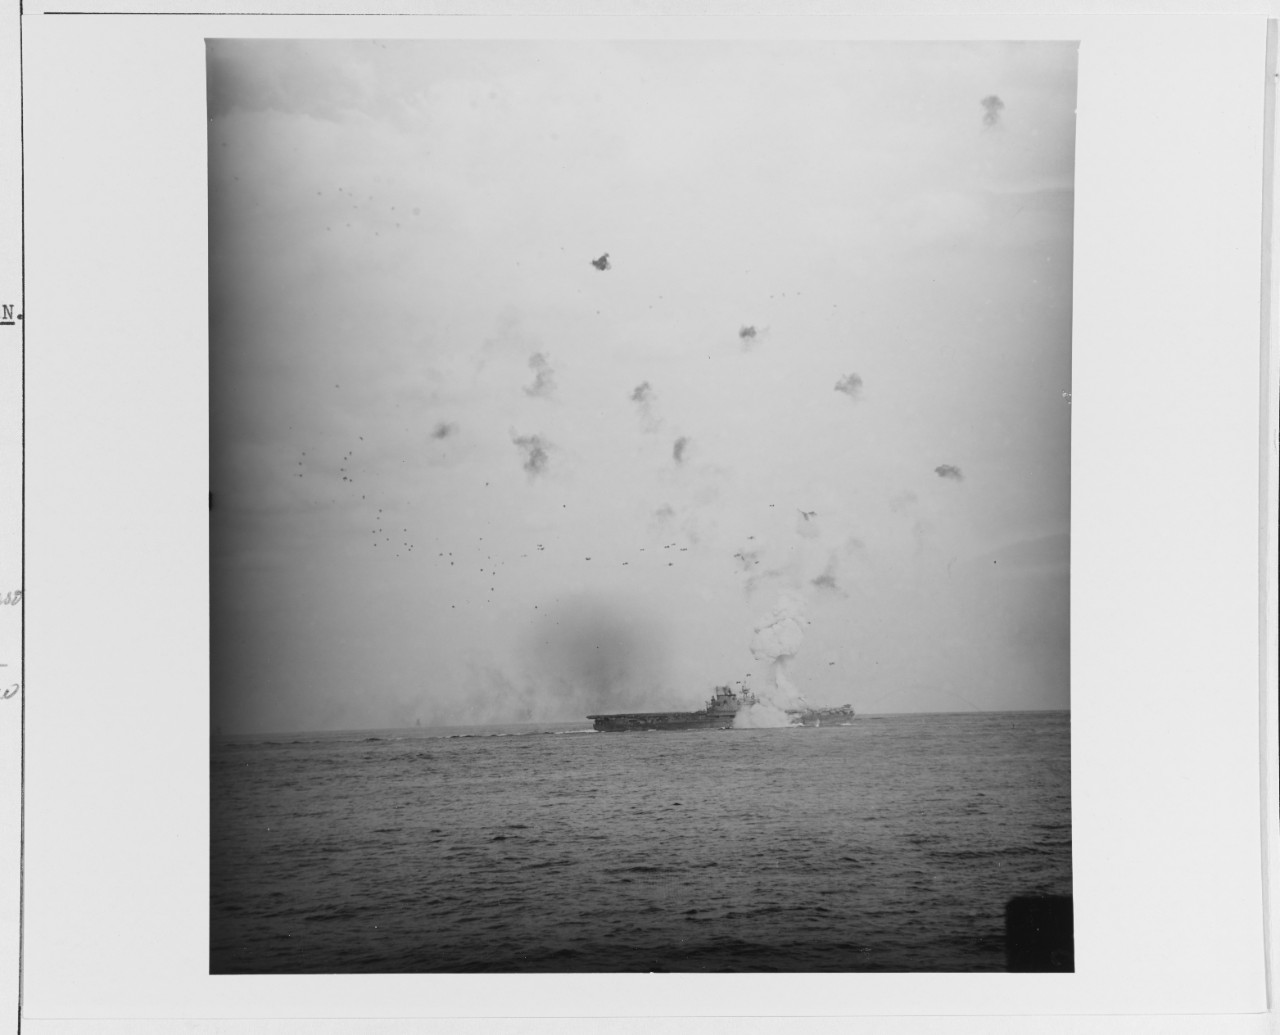 Despite the intense flak bursts over Enterprise the Zeke slams into the ship to starboard, as seen from Bataan (CVL-29), 13 May 1945. A huge column of smoke rises from the carrier, and she has way on in the midst of an emergency turn. (U.S. Navy Photograph 80-G-323565, National Archives and Records Administration, Still Pictures Branch, College Park, Md.)